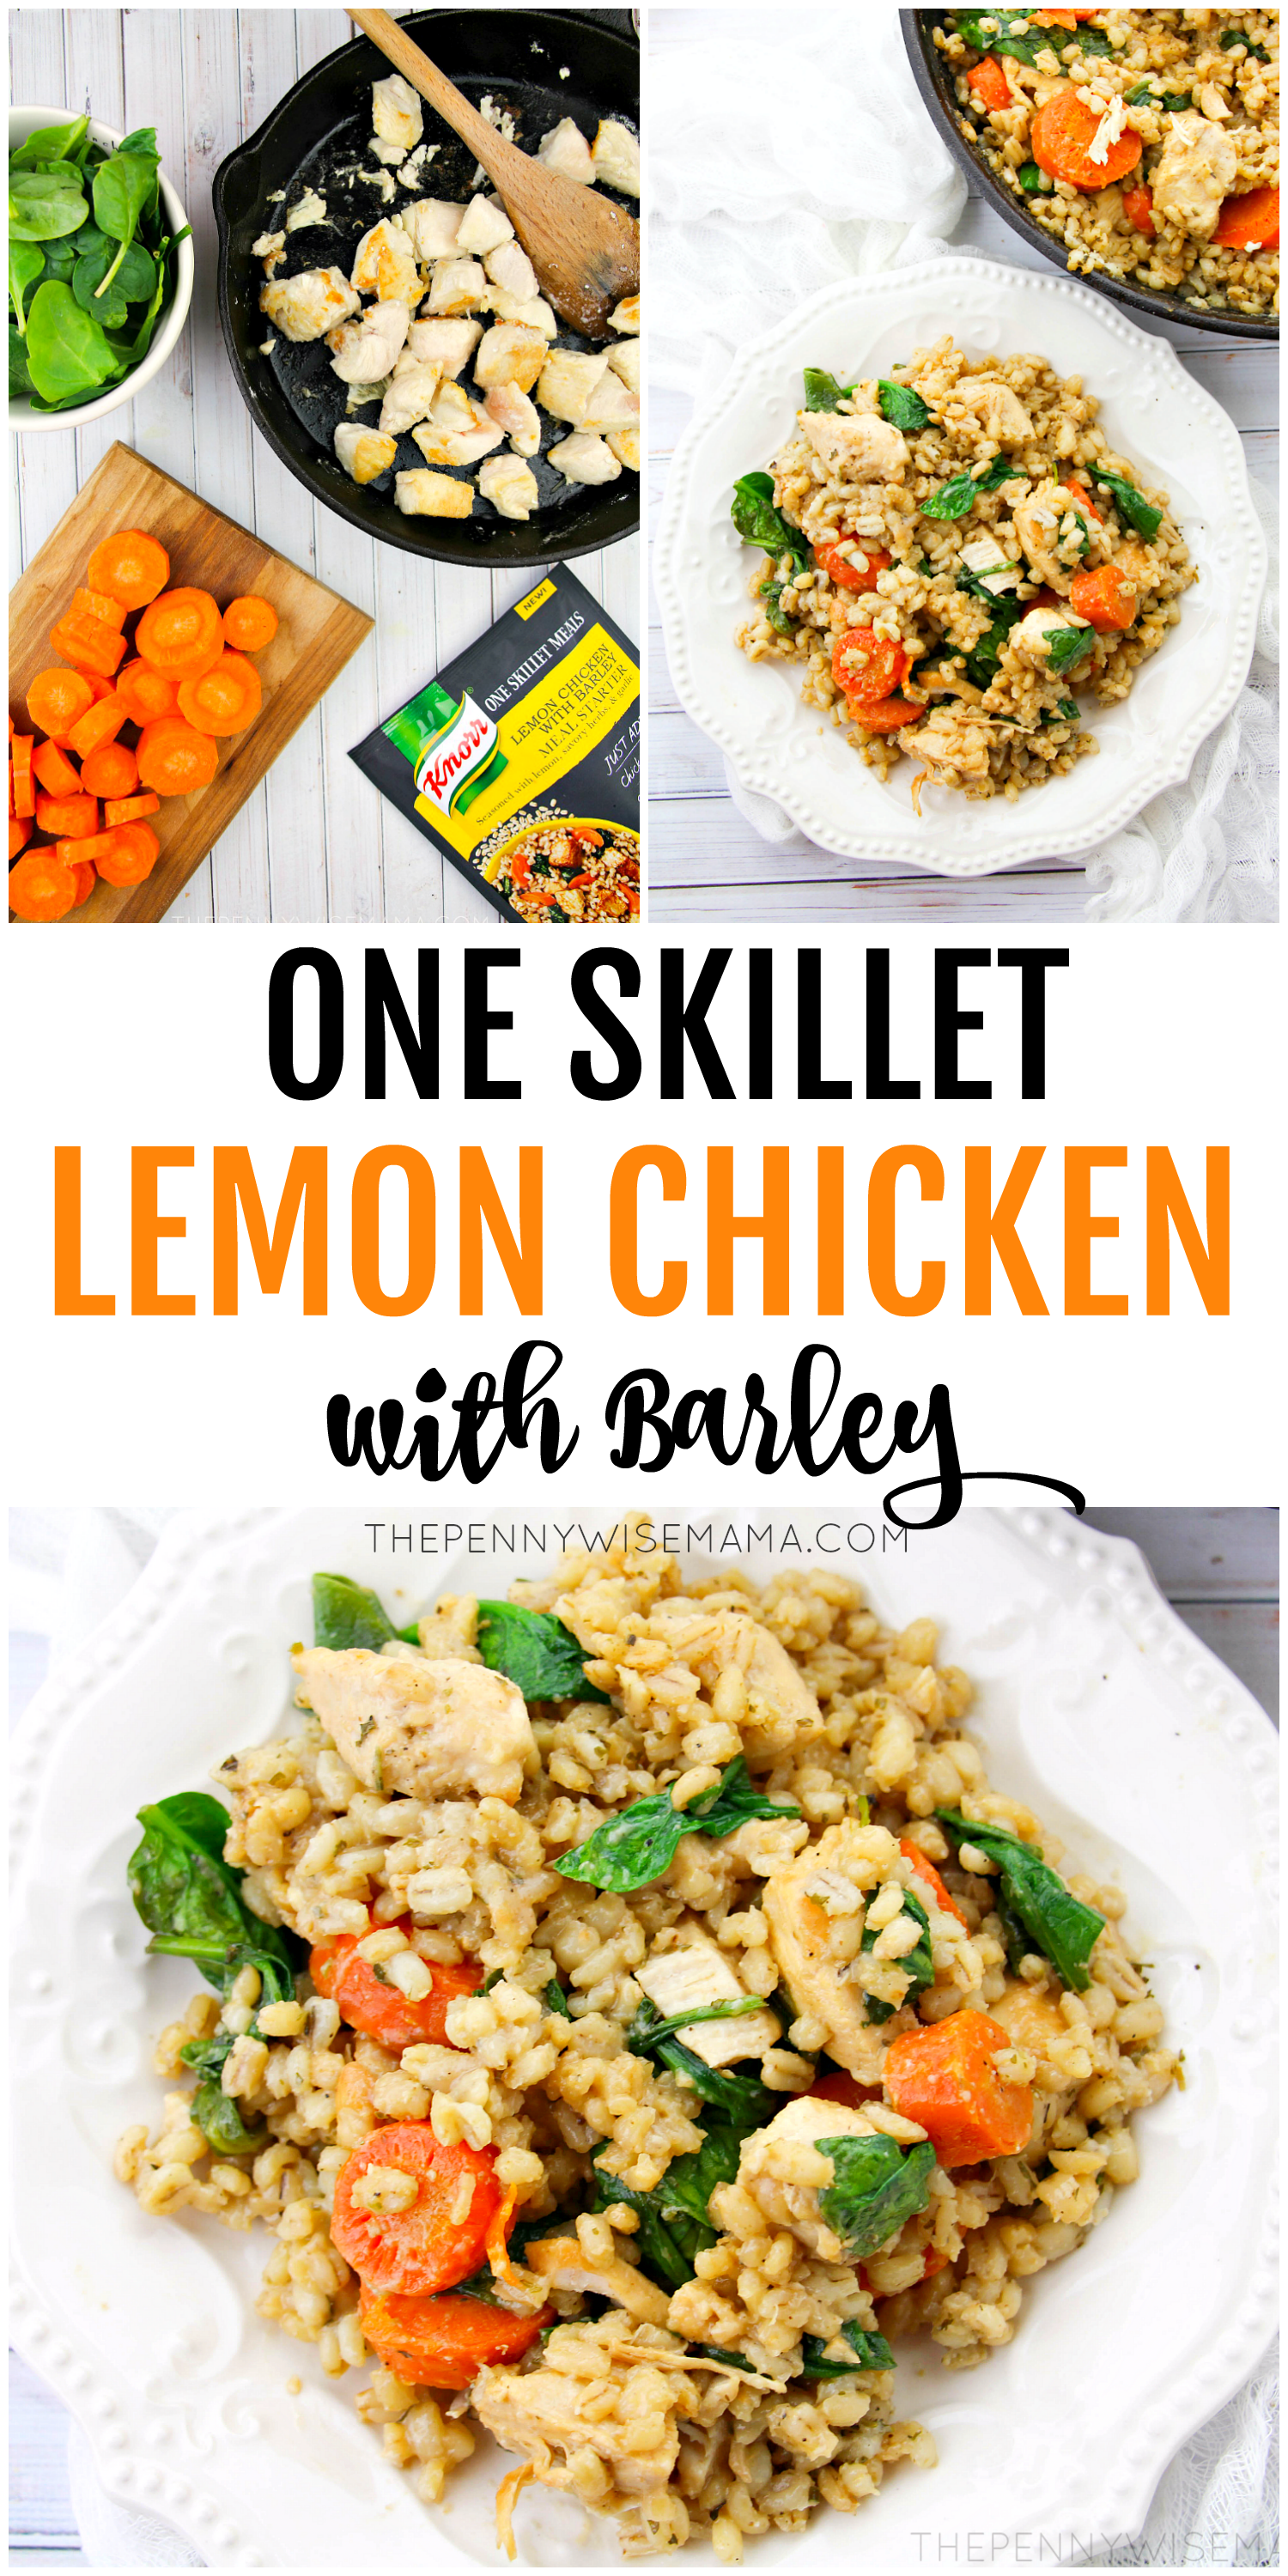 One Skillet Lemon Chicken with Barley - Healthy & Delicious Recipe